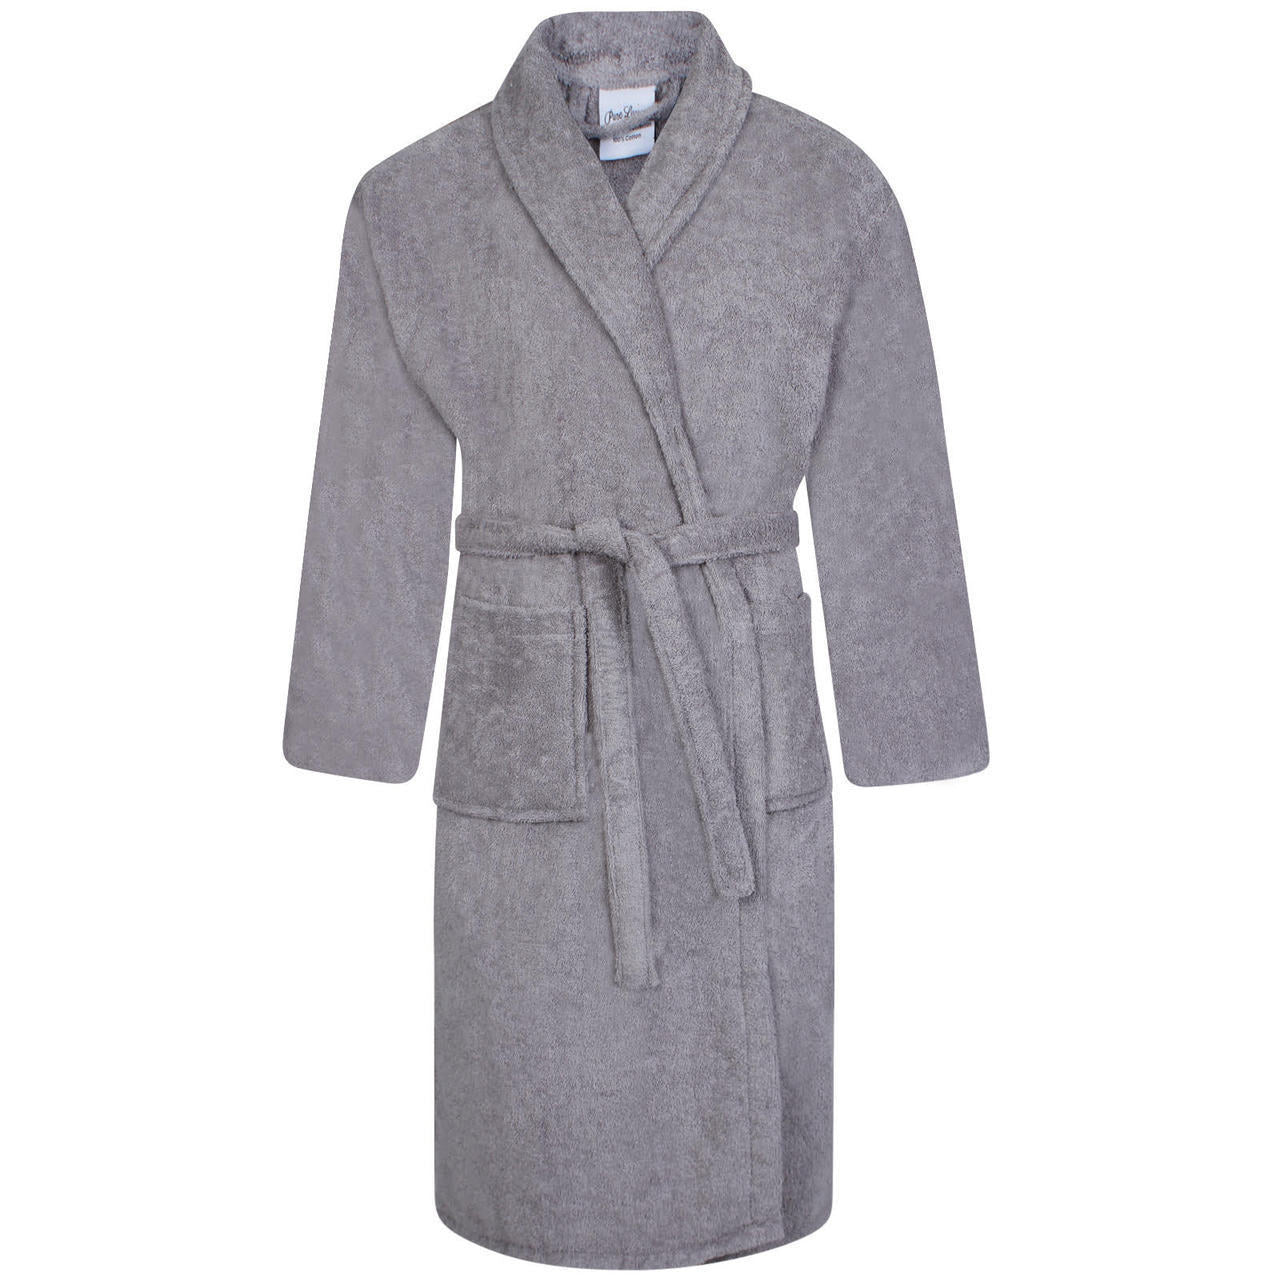 Egyptian Shawl Collar Bath Robes | Silver